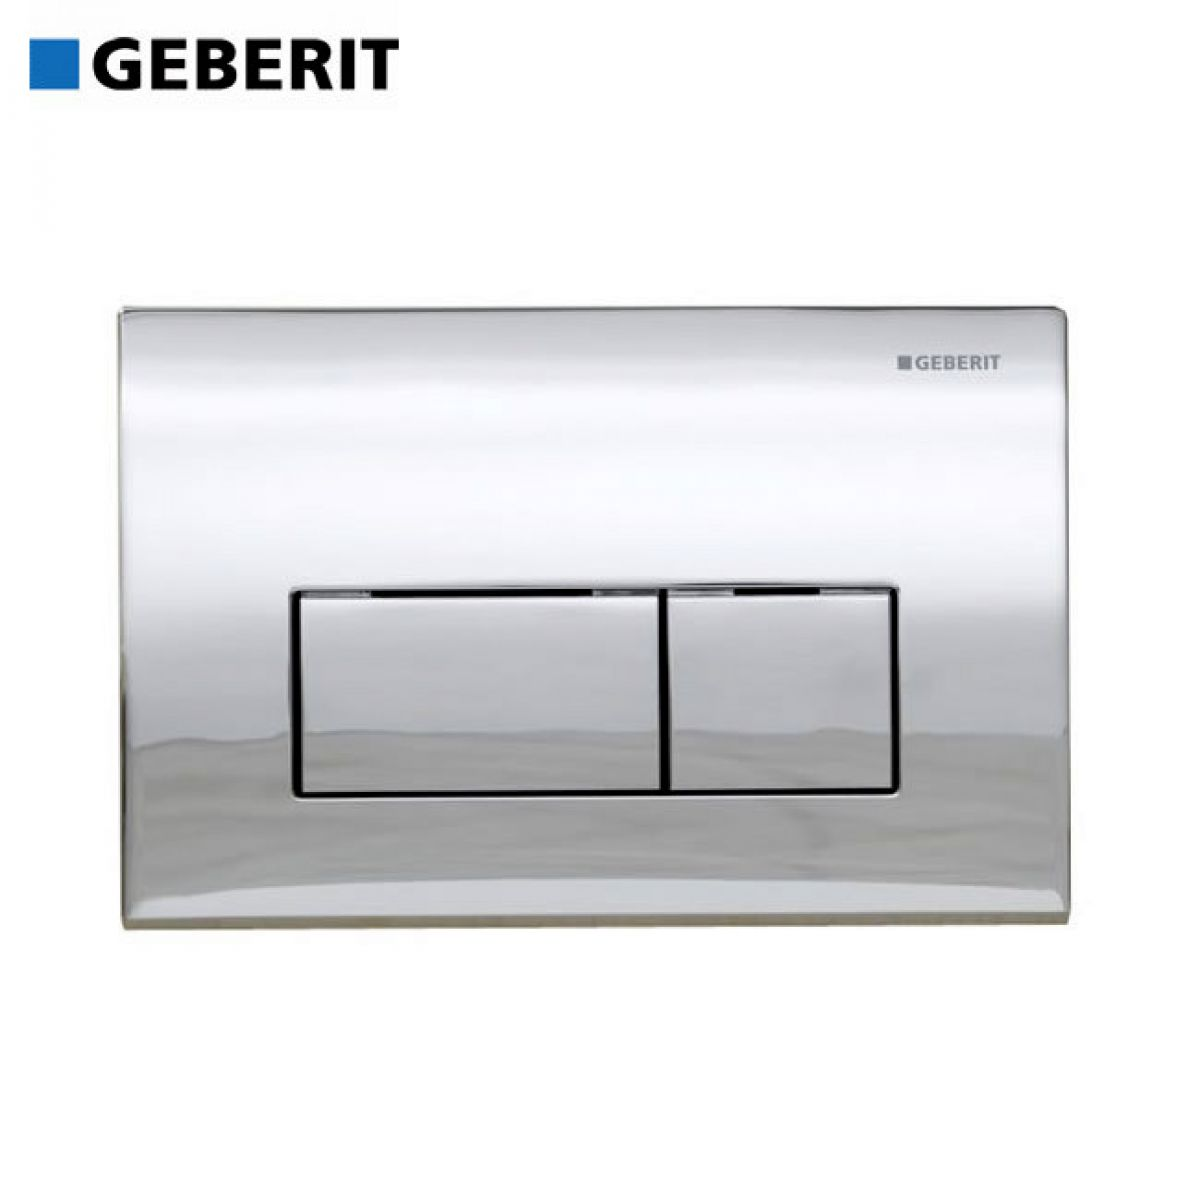 geberit kappa 50 dual flush plate uk bathrooms. Black Bedroom Furniture Sets. Home Design Ideas